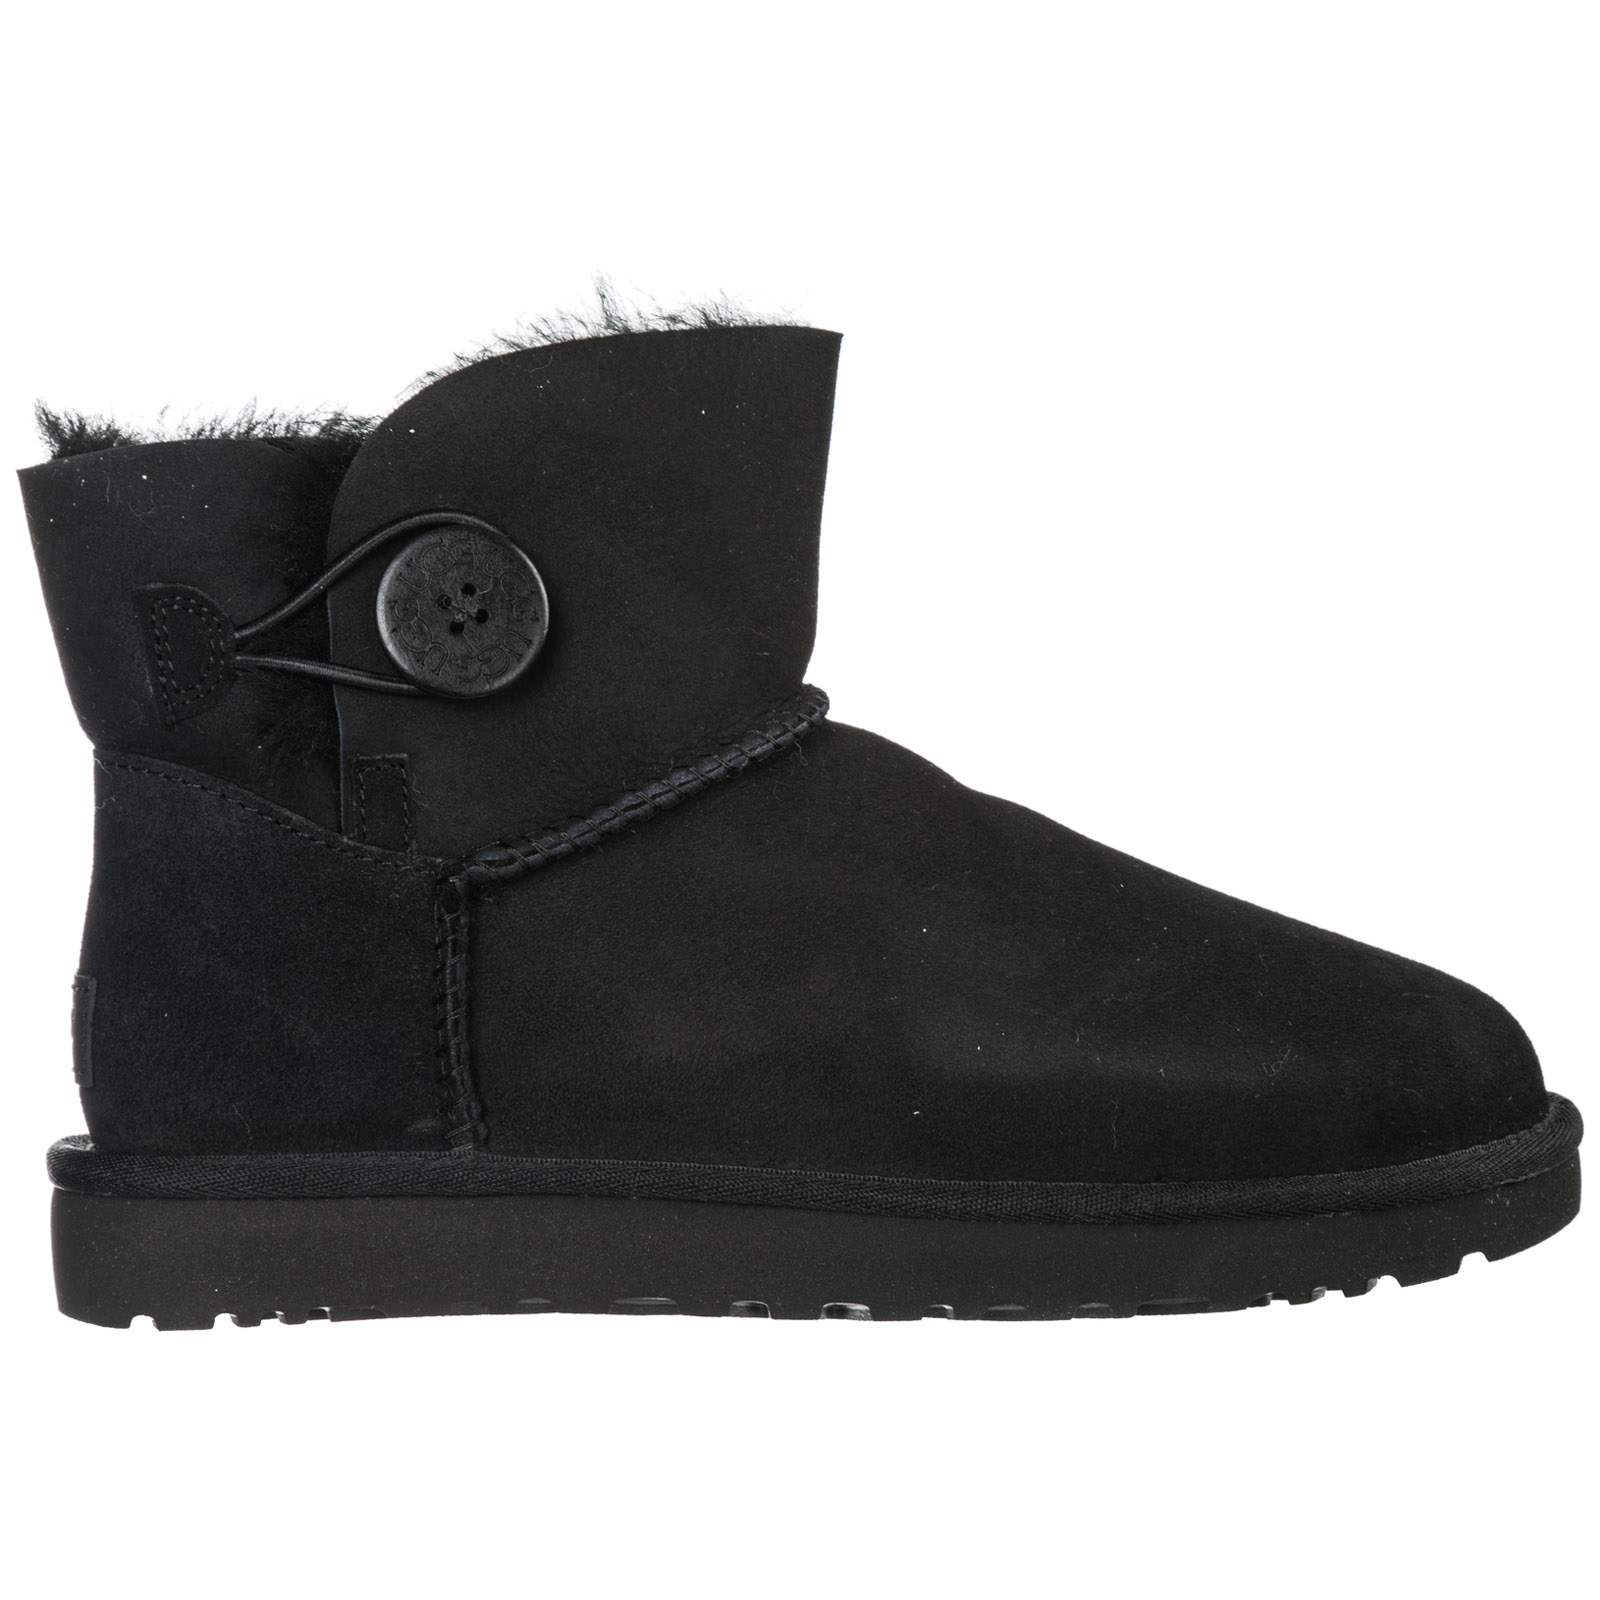 d3c4831fcf1 Women's Suede Ankle Boots Booties Mini Bailey Button in Black